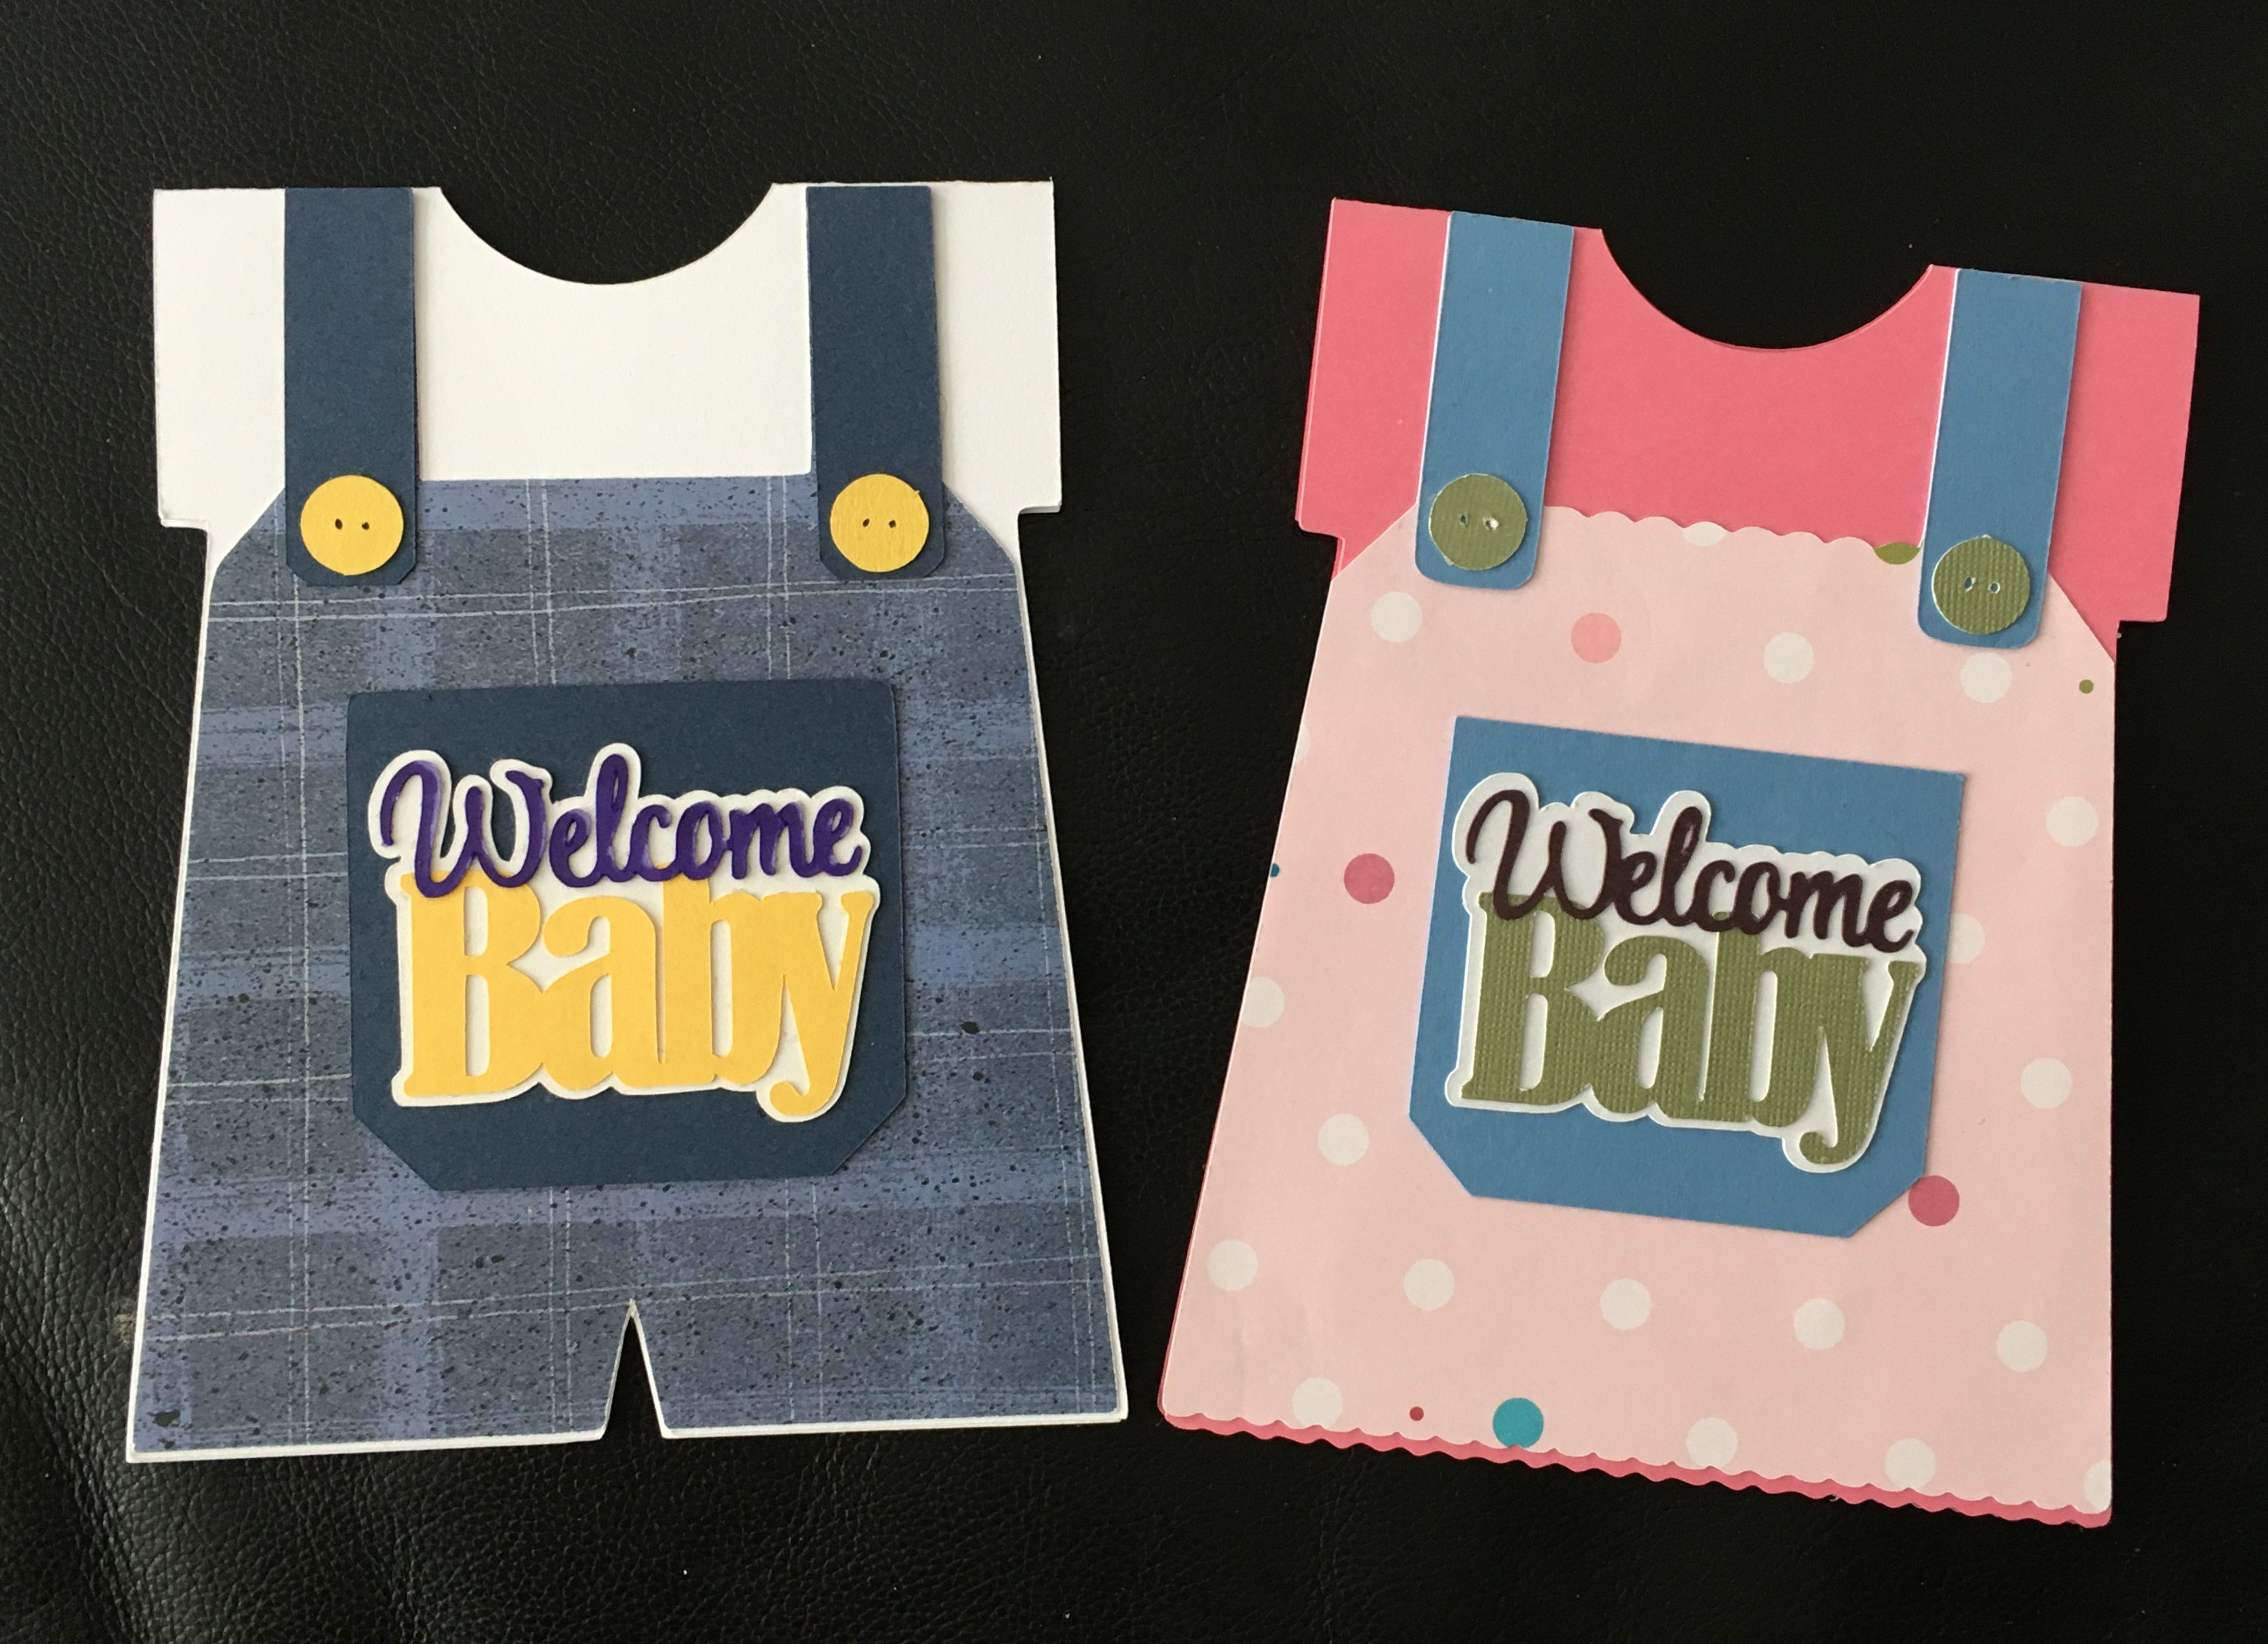 Welcome Baby Boy Girl Silhouette Cameo 3 Machine Greeting Card Set